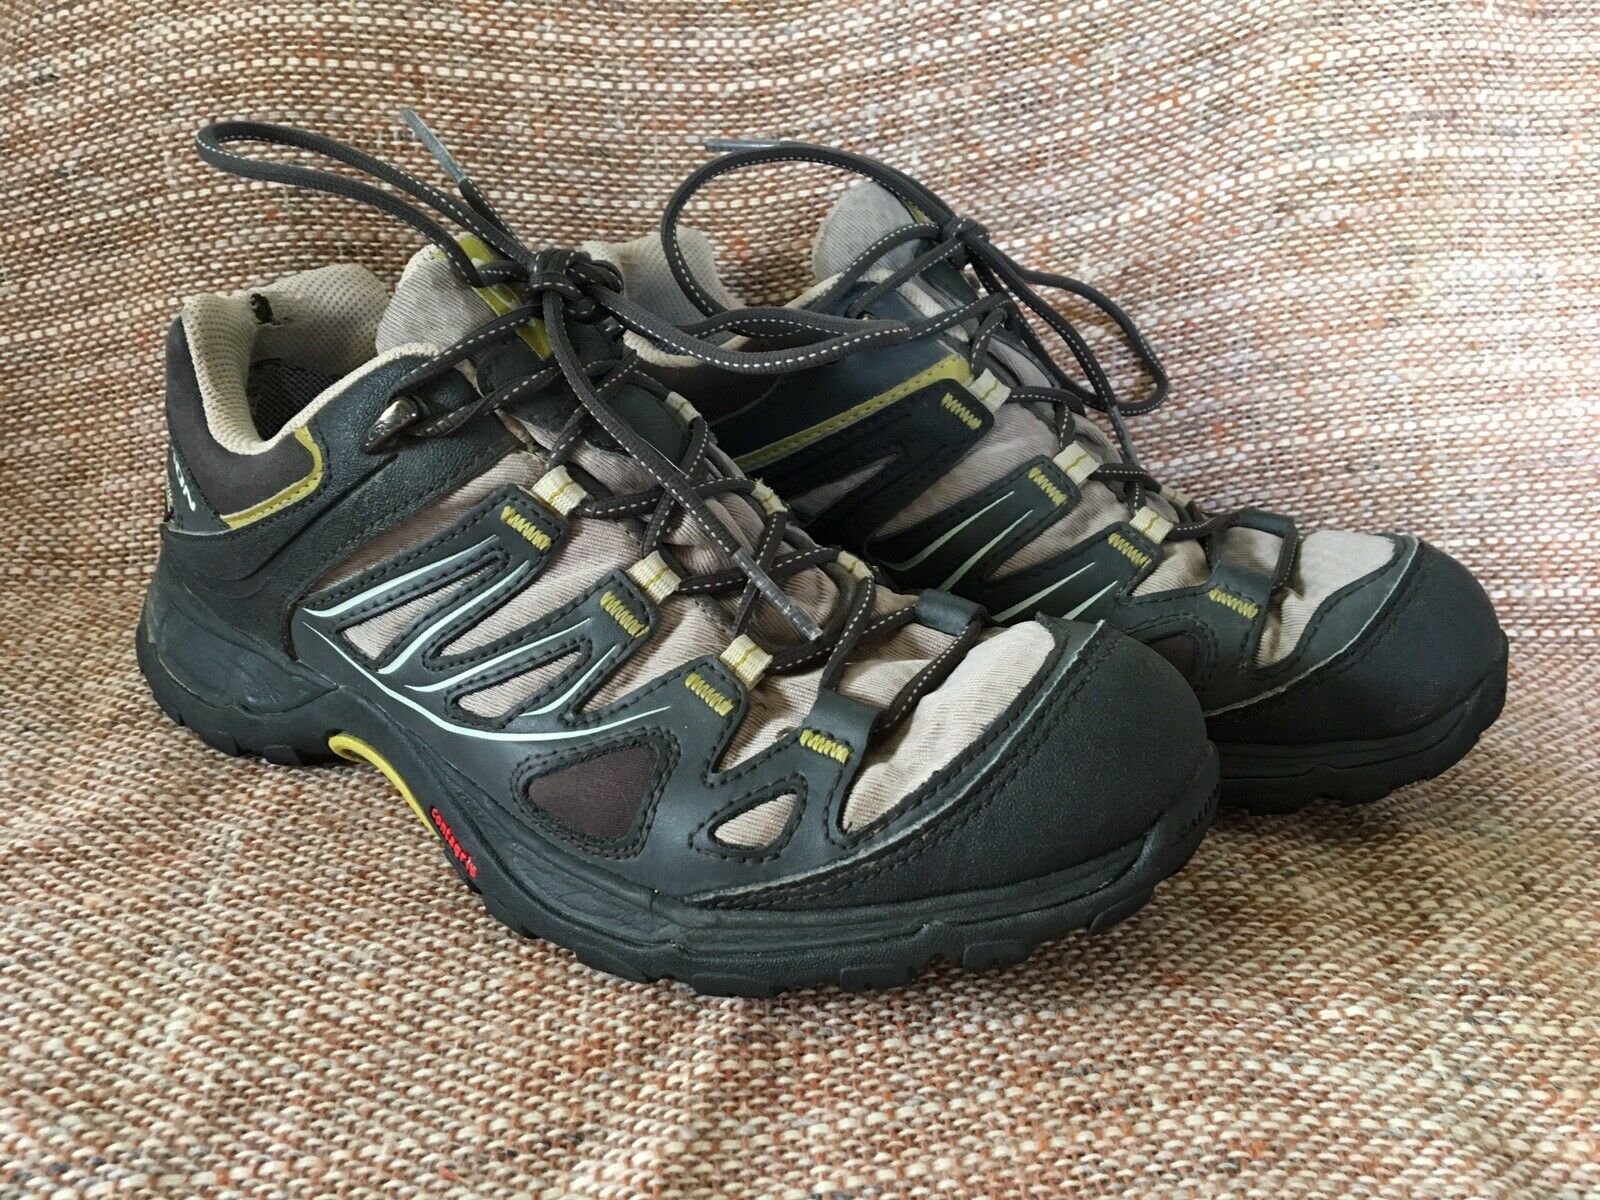 Salomon Ellipse GTX Gore-Tex Women's Waterproof Trail Hiking shoes Size 7.5